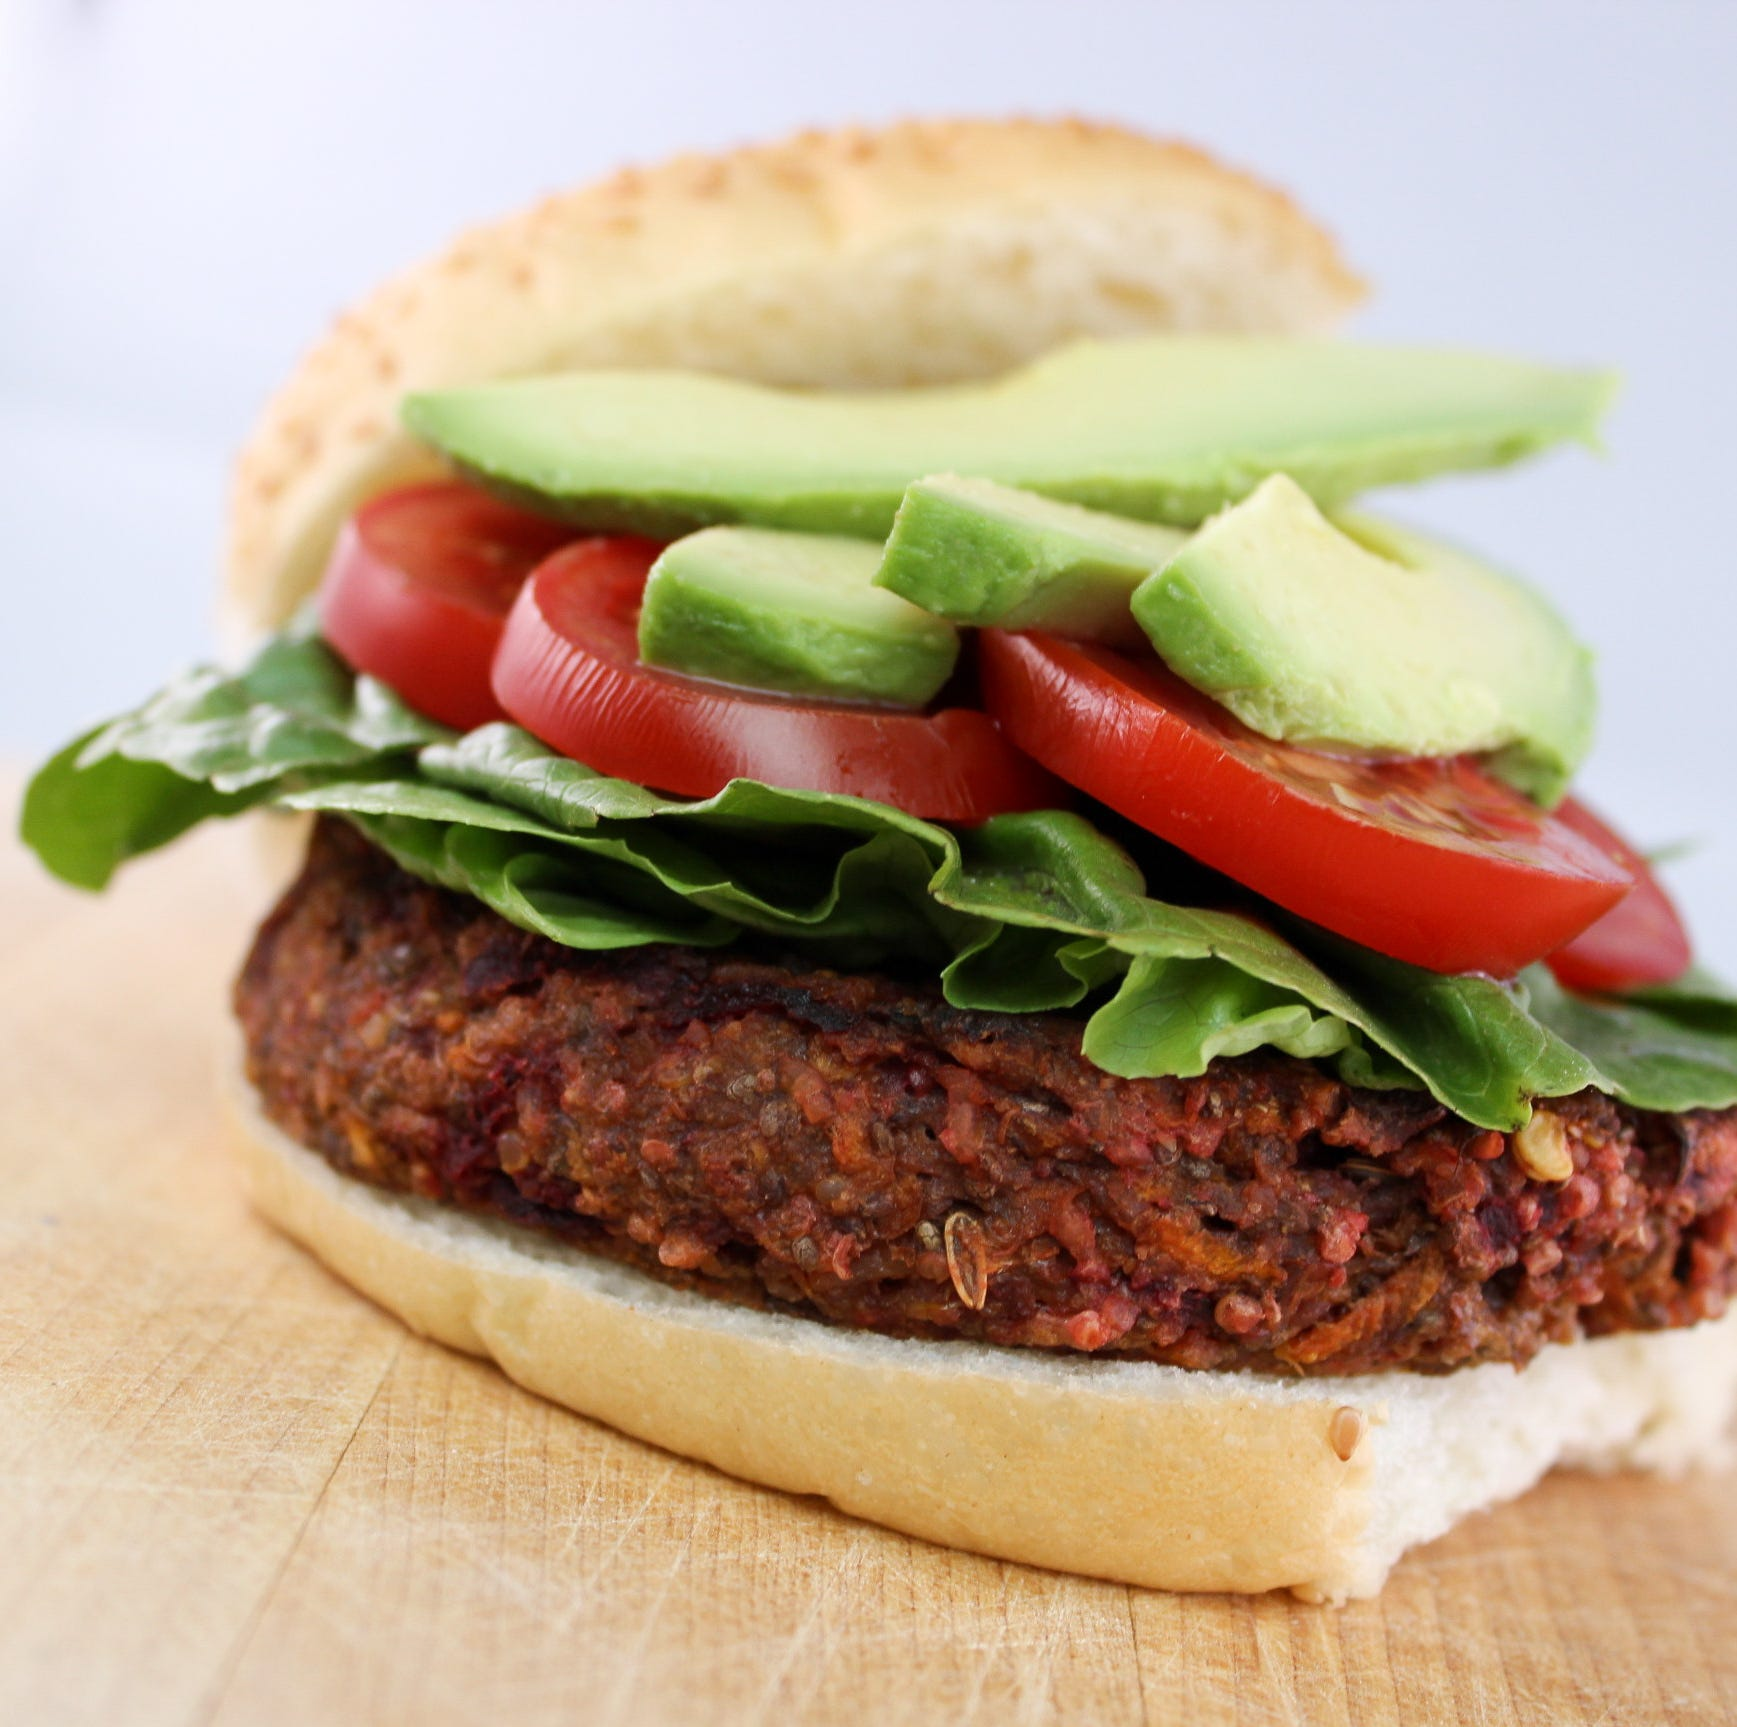 Vegan burger from Des Moines Farmers' Market food vendor wins spot on PETA's 'Top 10' list